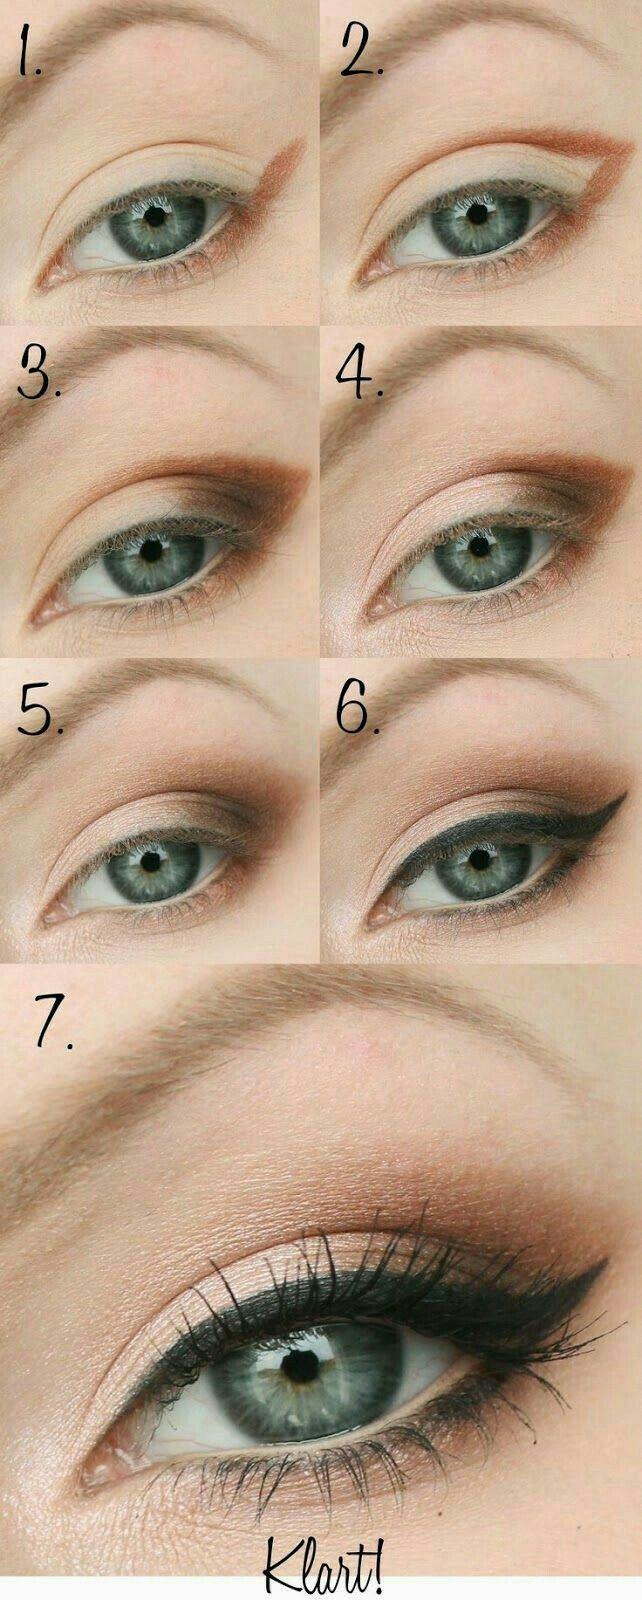 Pin by j on wink tutorials pinterest makeup makeup best eyeshadow tutorials almond shaped eyes easy step by step how to for eye shadow cool makeup tricks and eye makeup tutorial with instructions baditri Gallery